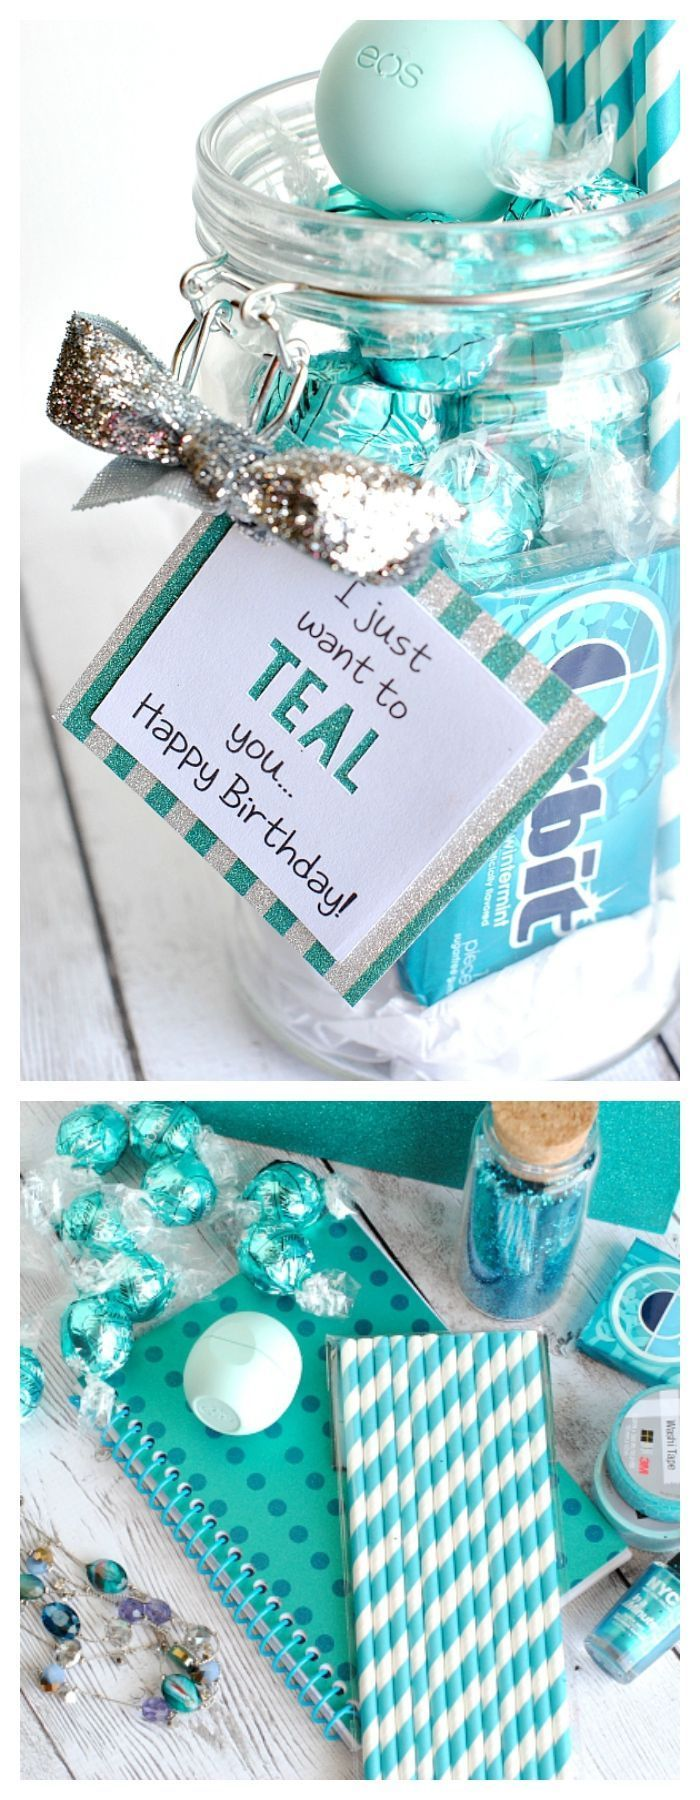 Geschenkkorb Ideen Do It Yourself Gift Basket Ideas For All Occasions Teal Theme